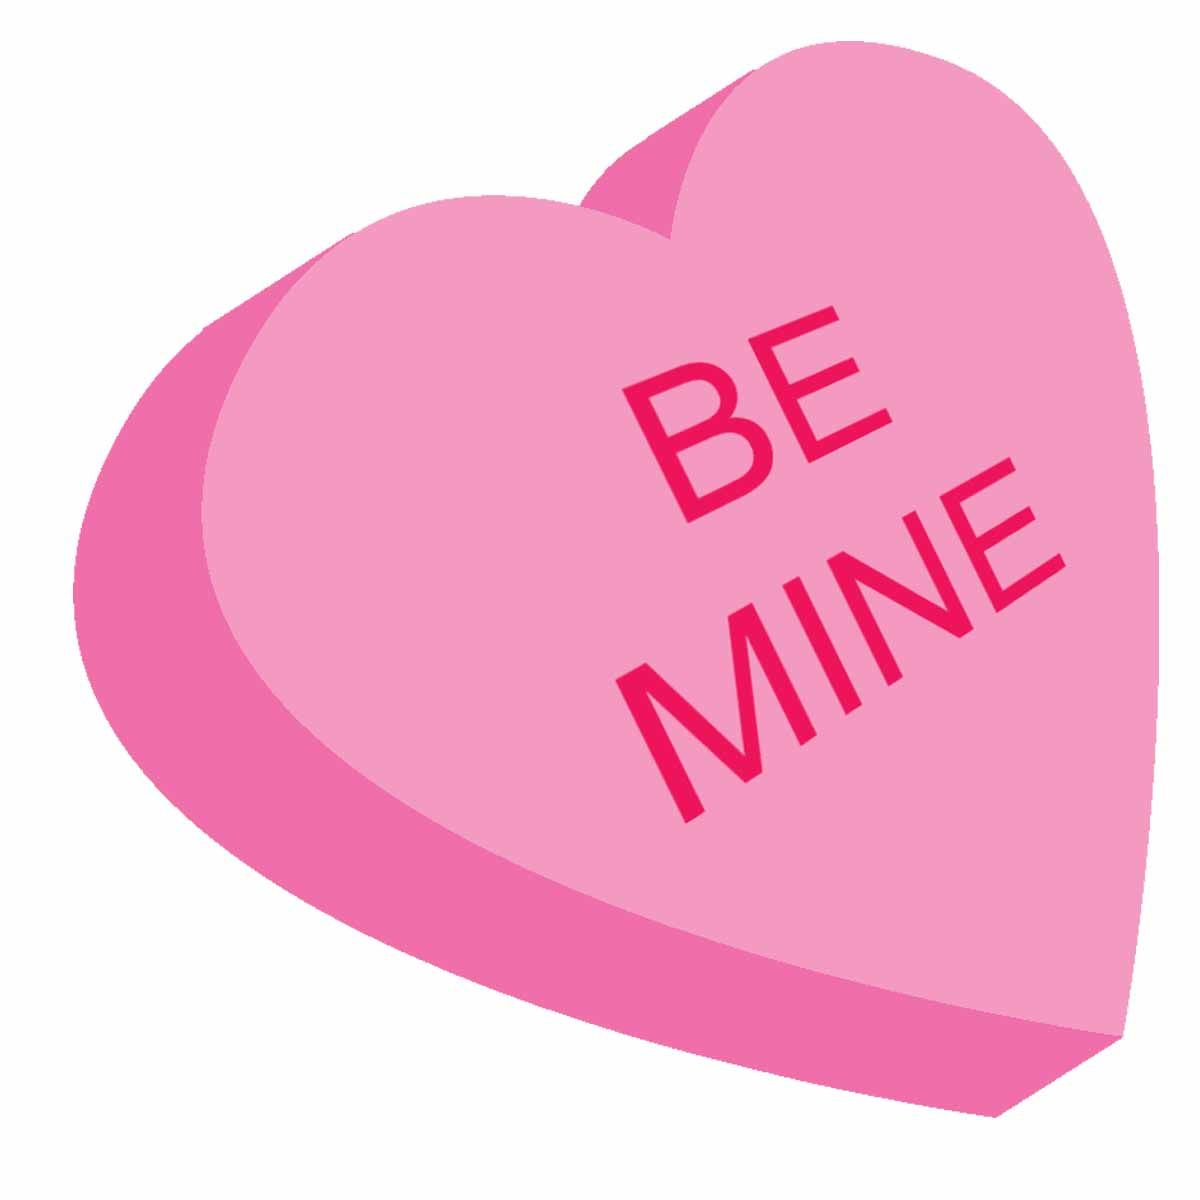 Be mine valentine heart clipart clip art transparent library Pinterest clip art transparent library